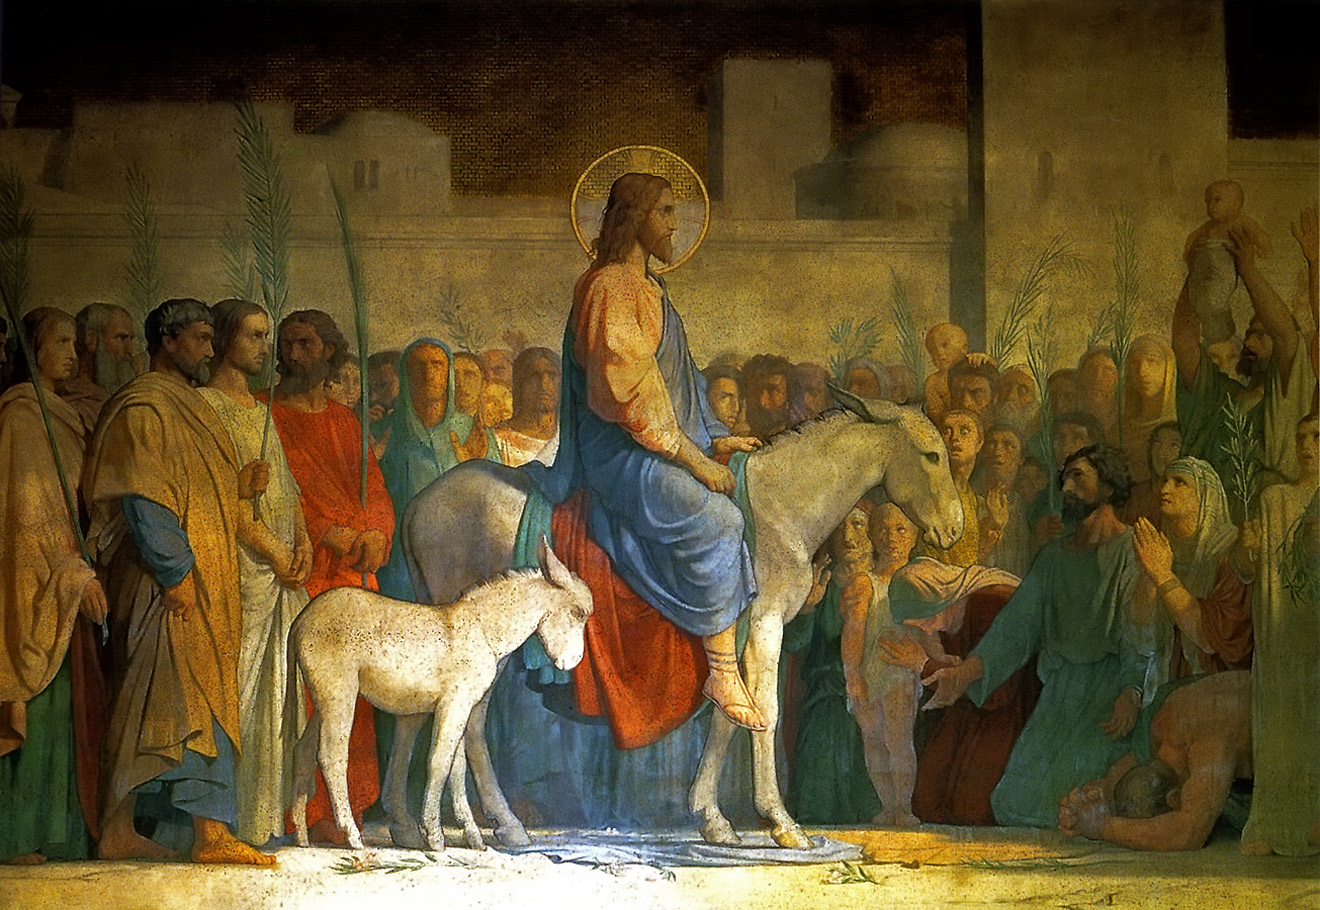 Triumphal Entry The triumphal entry into